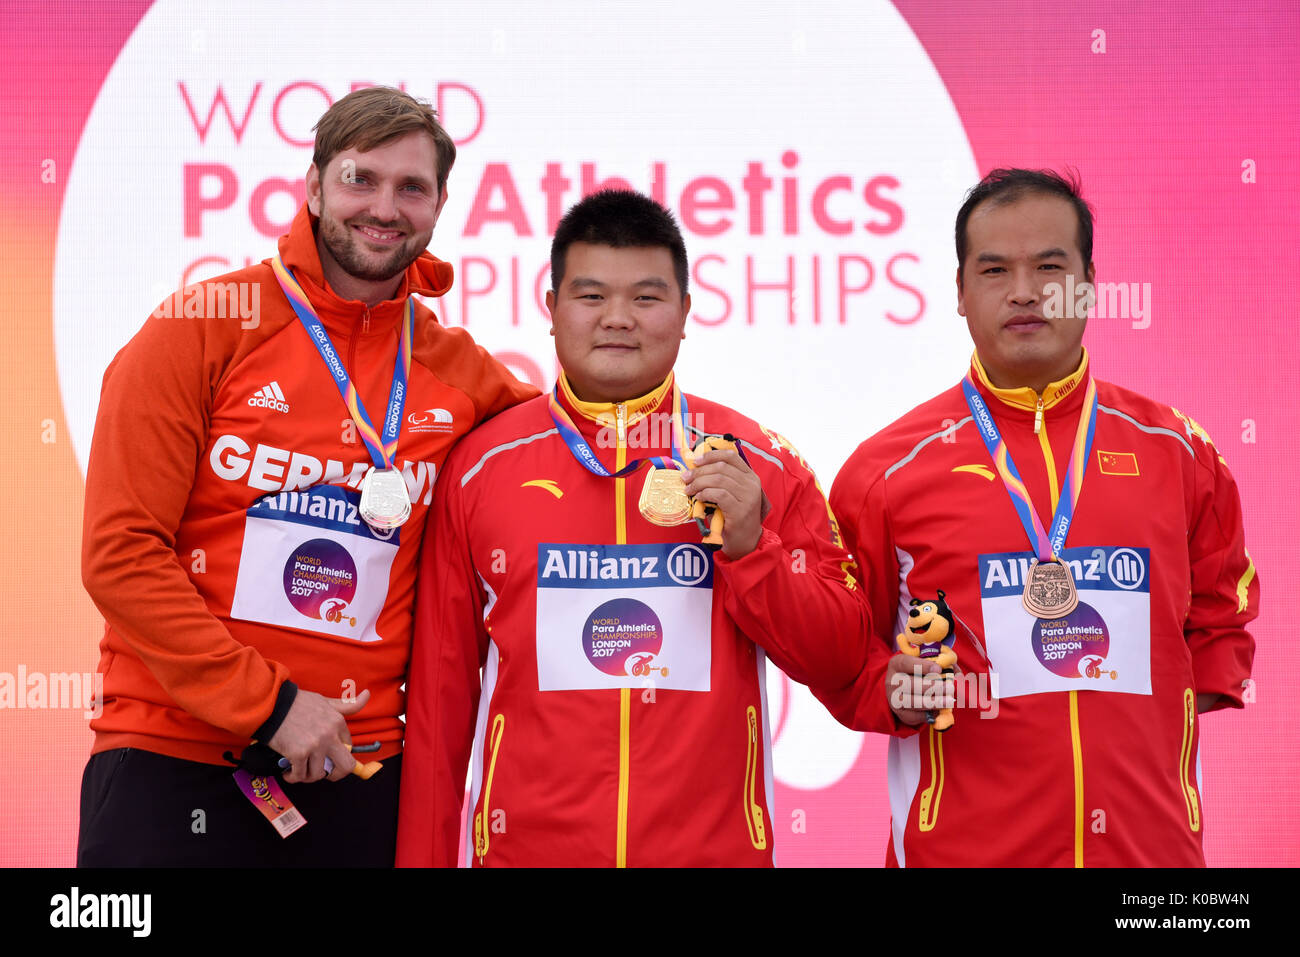 Enlong Wei, Mathias Uwe Schulze, Zhanbiao Hou at the medal ceremony for the F46 shot put at the World Para Athletics Championships, London - Stock Image